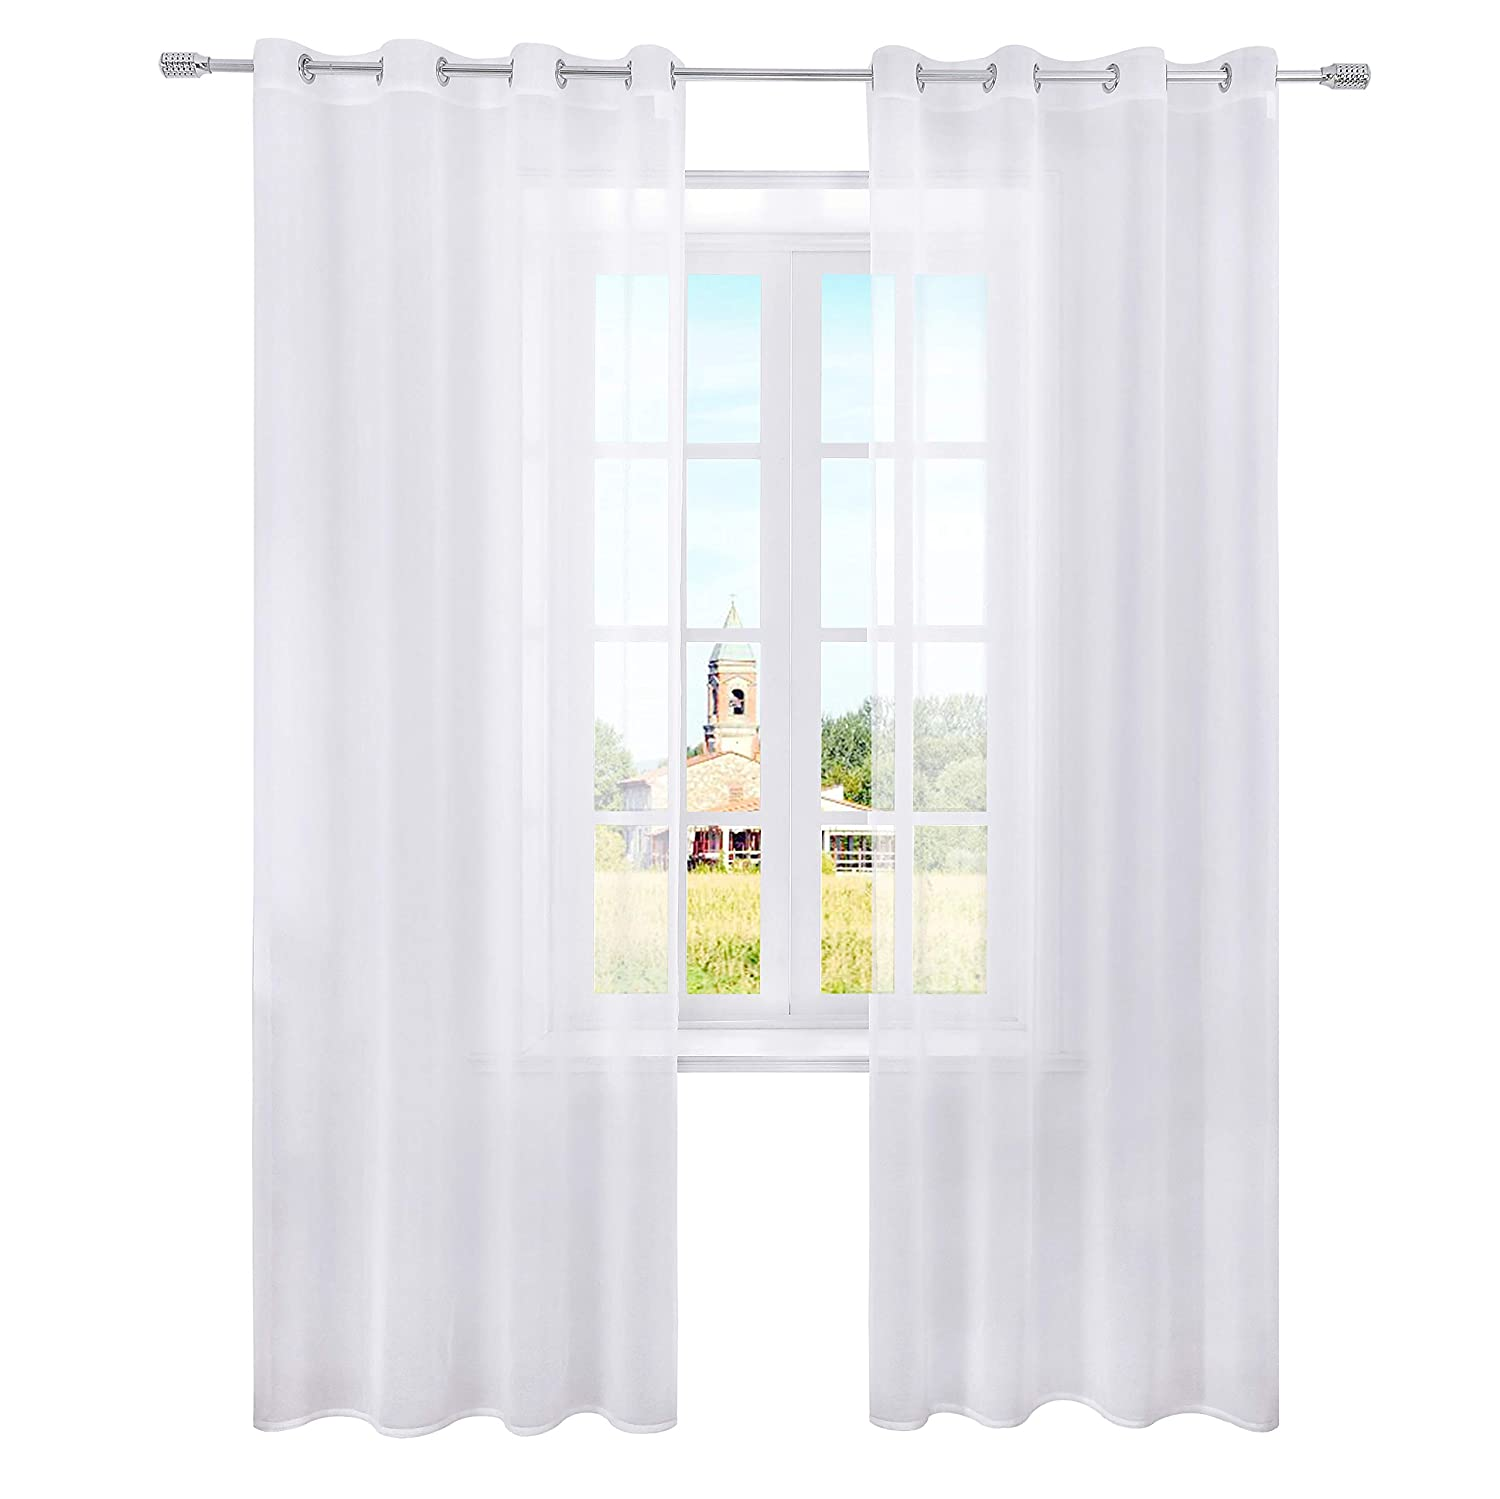 27887ec8802 Amazon.com  Selectex Linen Look Semi-Sheer Curtains - Grommet Voile Curtains  for Living and Bedroom